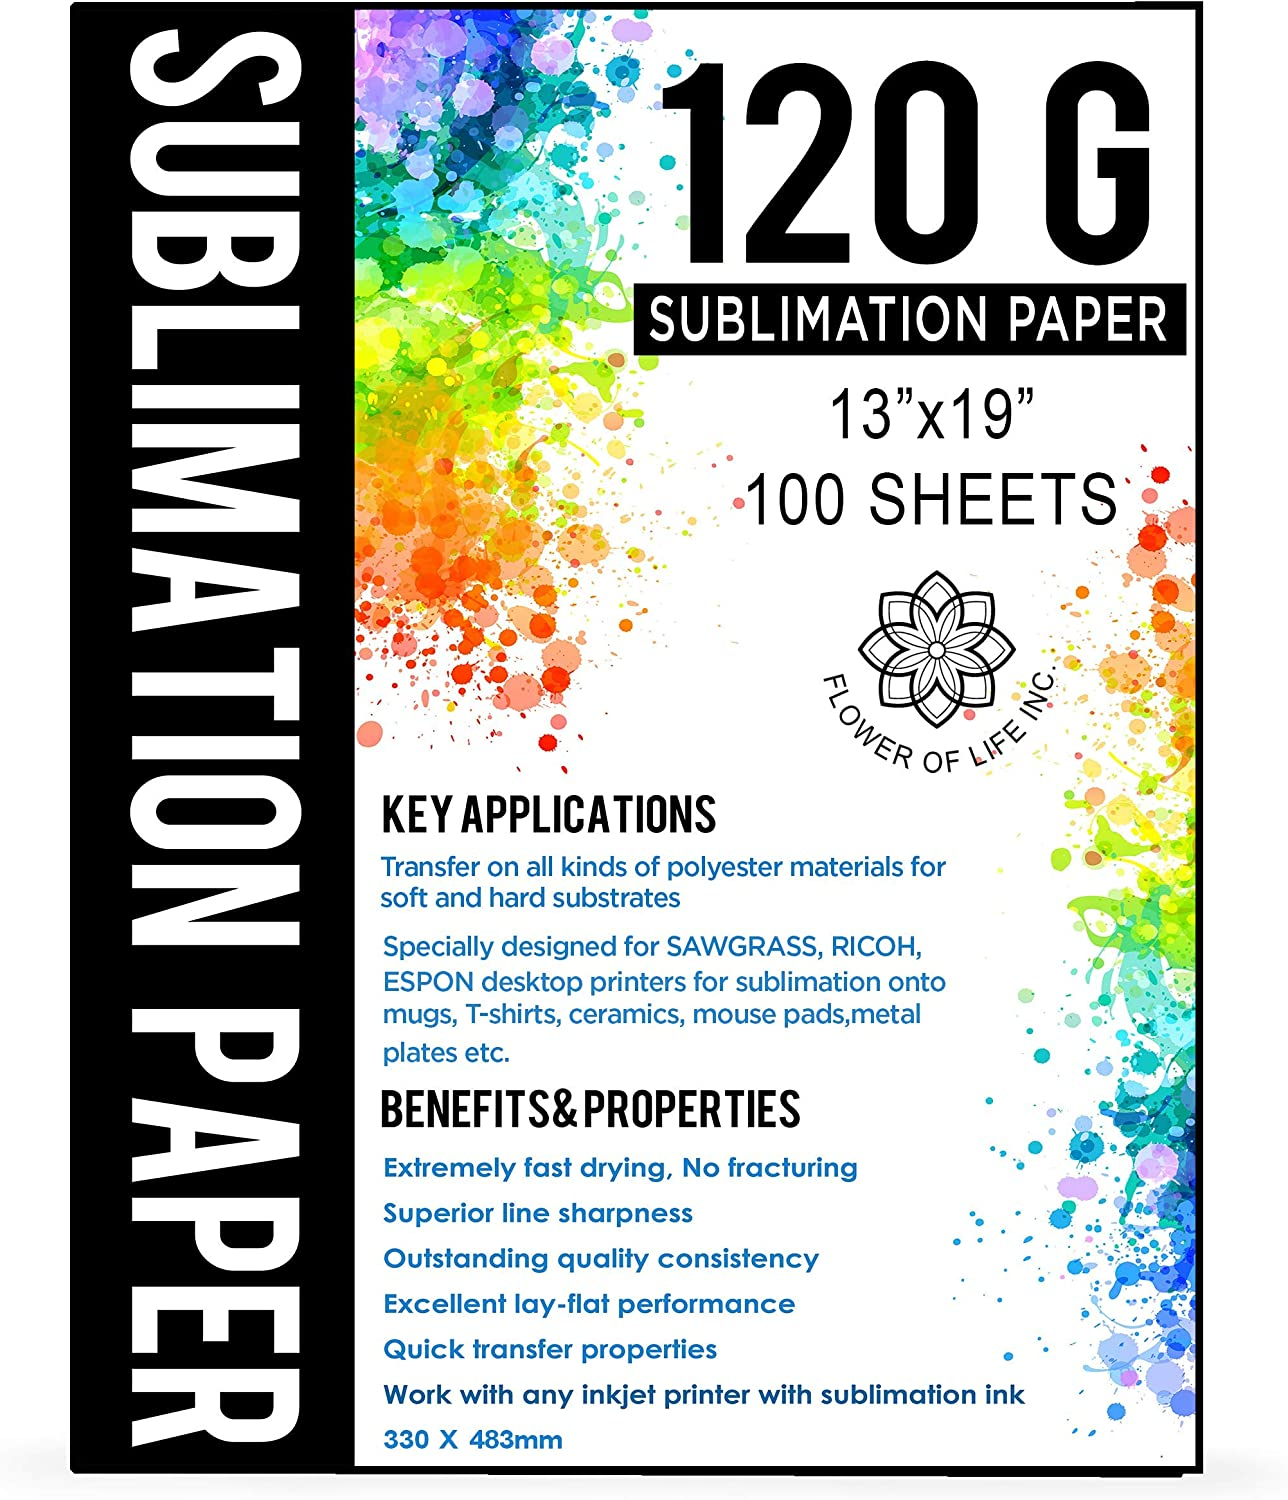 Extremely Fast Dry Transfer Rate 120 GSM Compatible with any inkjet printer with sublimation ink 100 Sheets Sublimation Paper A4 Size 8.5x11 Inches